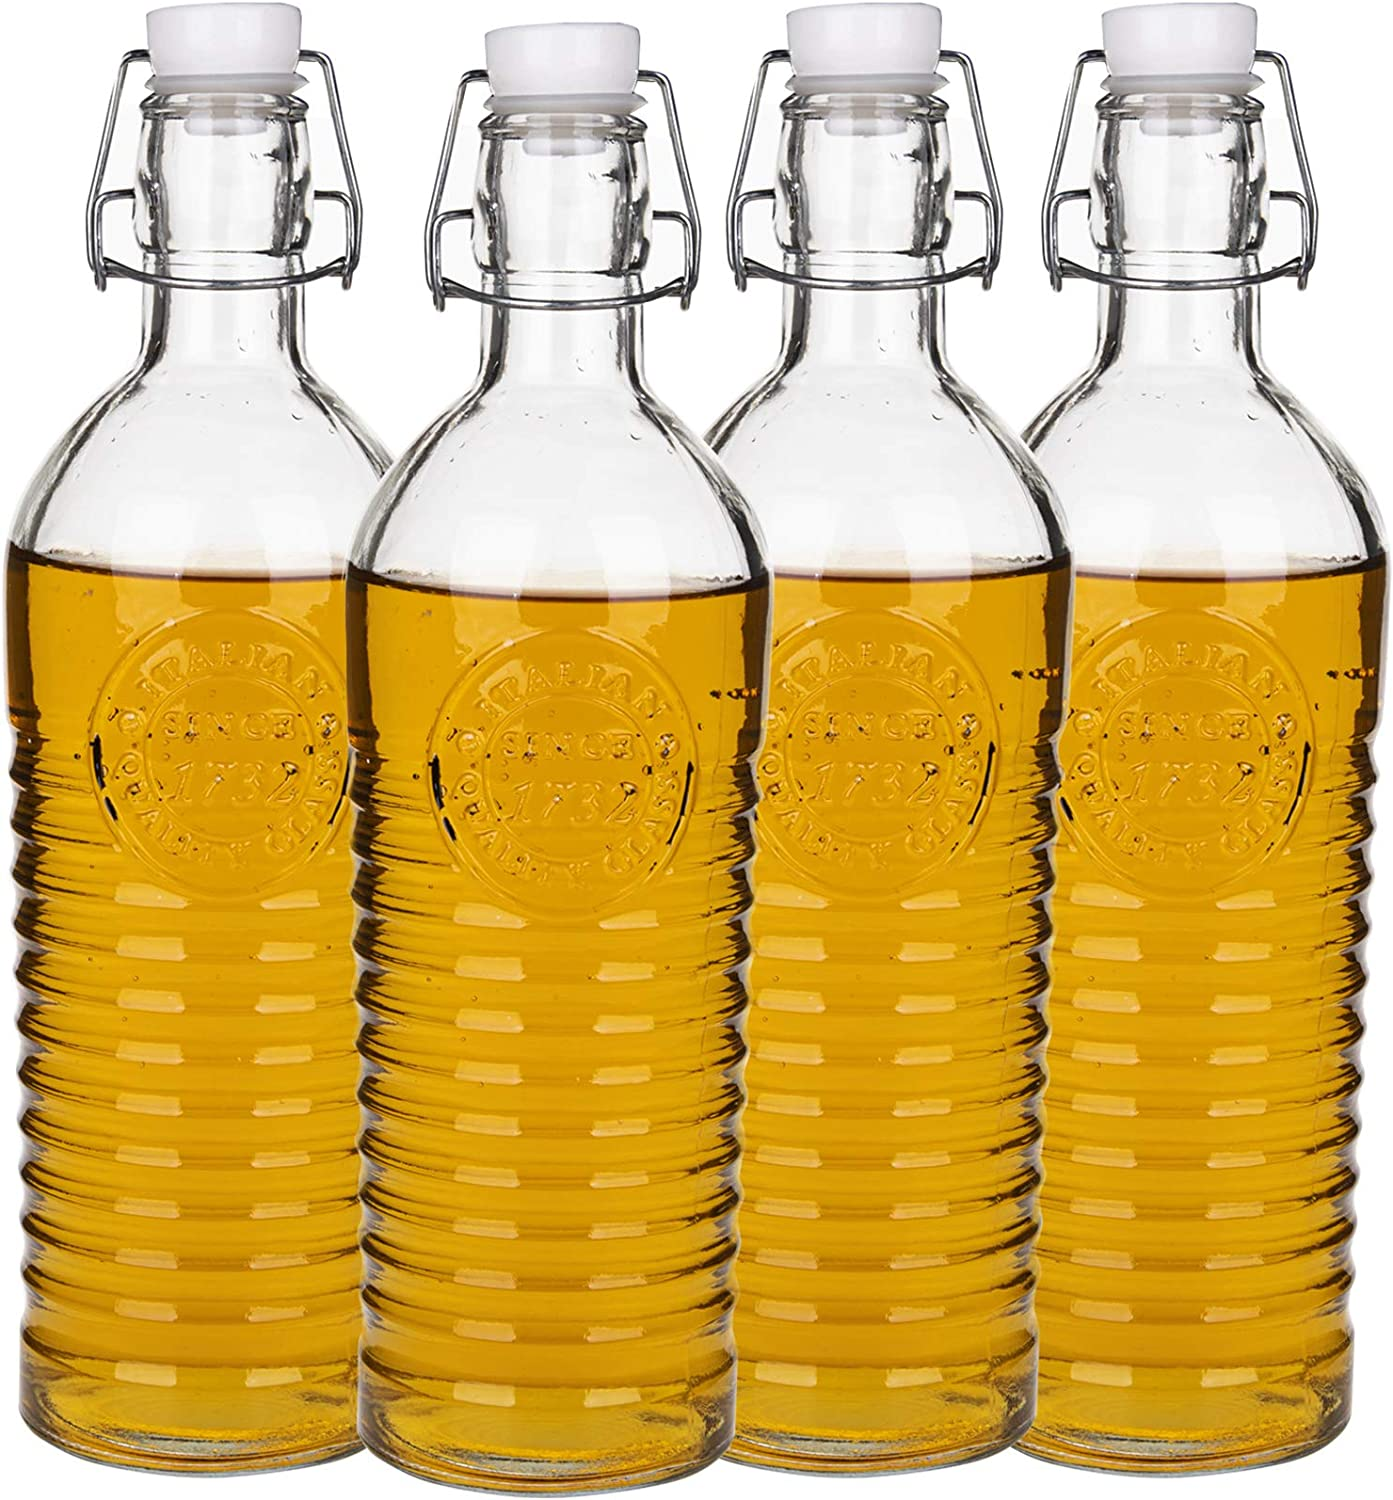 Nicunom 4 Pack Flip Top Glass Bottle, 40 Oz. / 1.2 Liter Clear Glass Pitcher Swing Top Brewing Bottle with Stopper for Beverages, Oils, Kombucha, Beer, Kiefer, Water, Soda, Airtight Seal & Metal Clamp